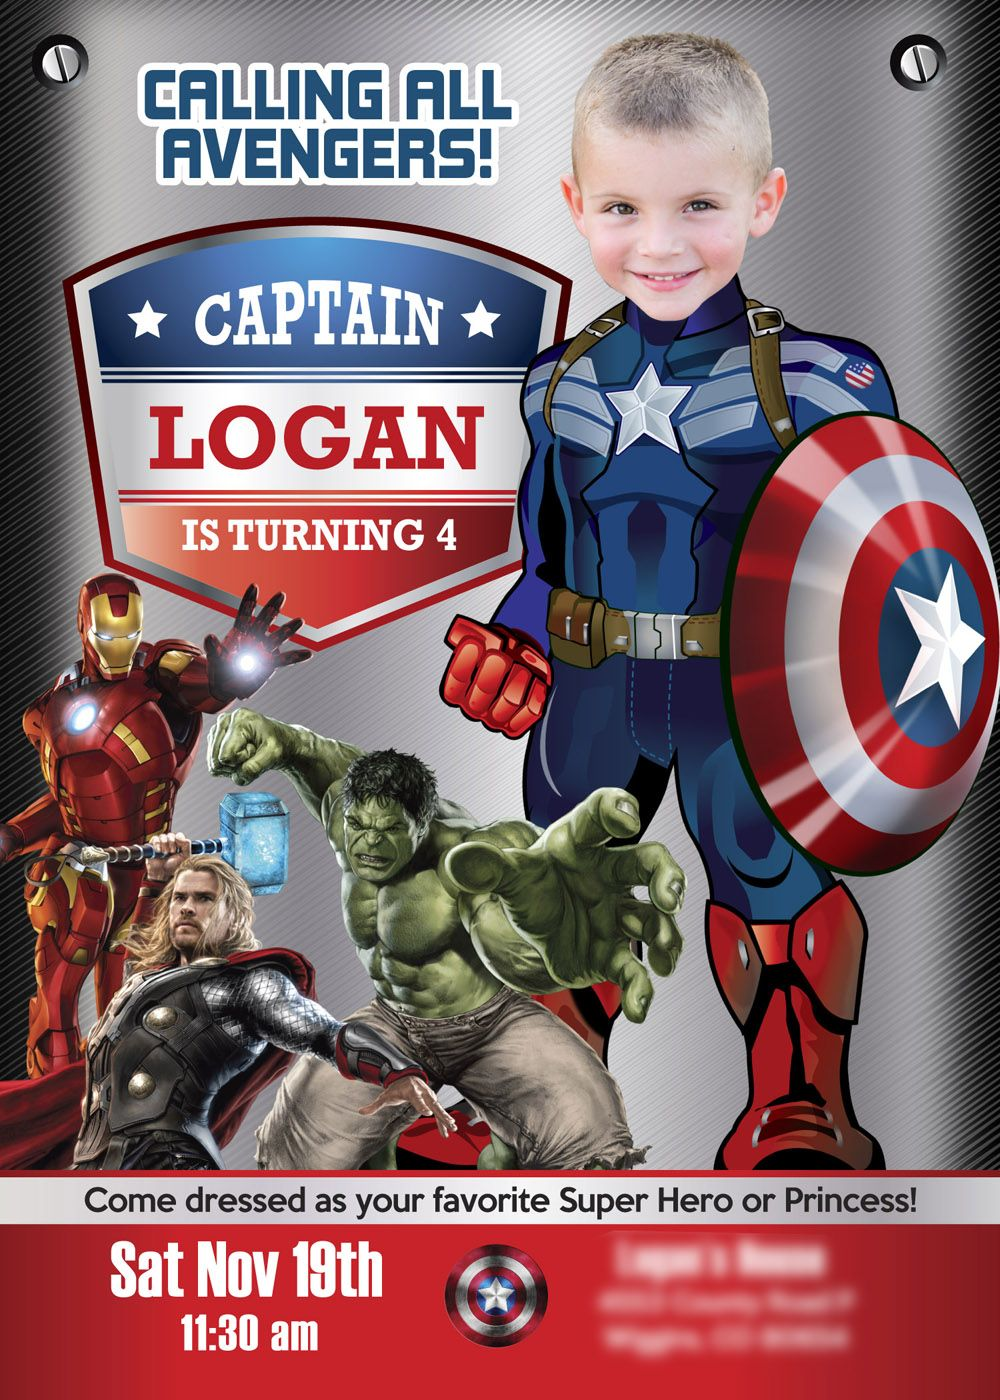 A Super Sample Turn Your Boy Into His Favorite Super Hero Captain America Capt Avengers Party Invitation Captain America Party Captain America Birthday Party